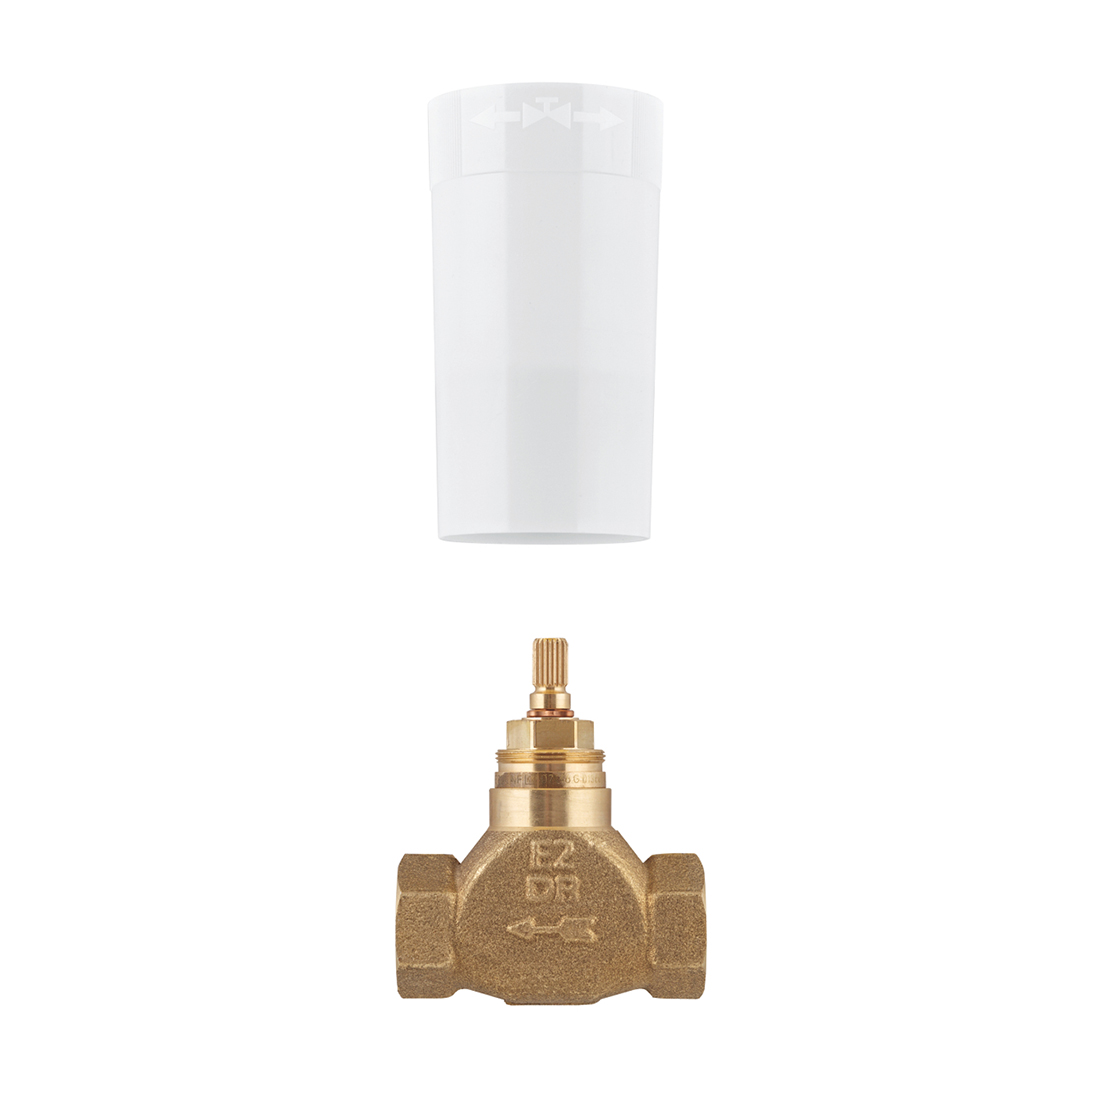 Grohe 29800000 Concealed Stop-Valve- 1/2